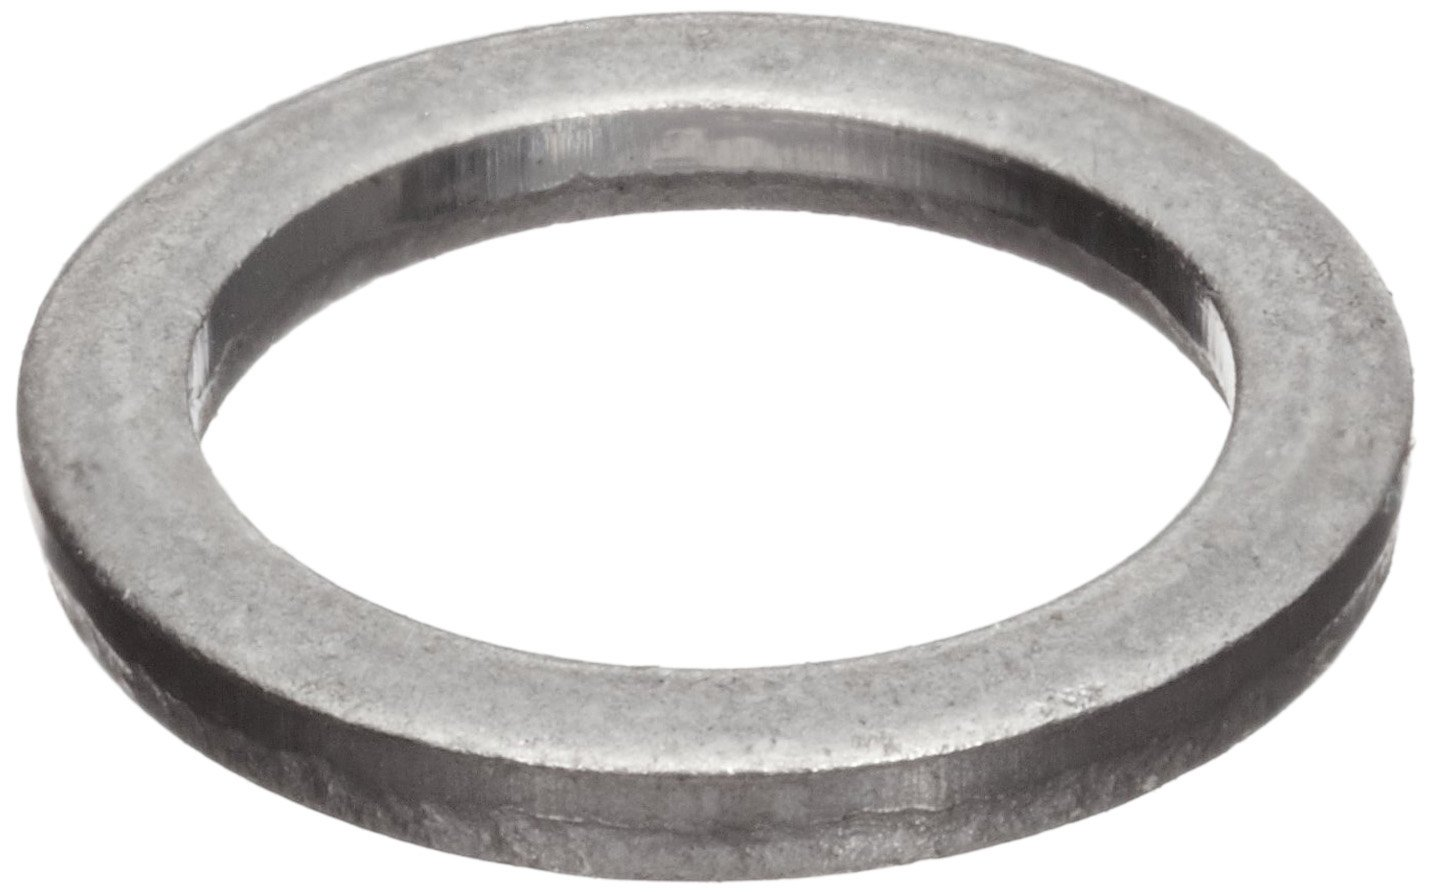 1//4 Bolt Size Shoulder-Lengthening Shim Flat Washer 0.171 ID Pack of 50 0.030 Thick .241 OD 18-8 Stainless Steel